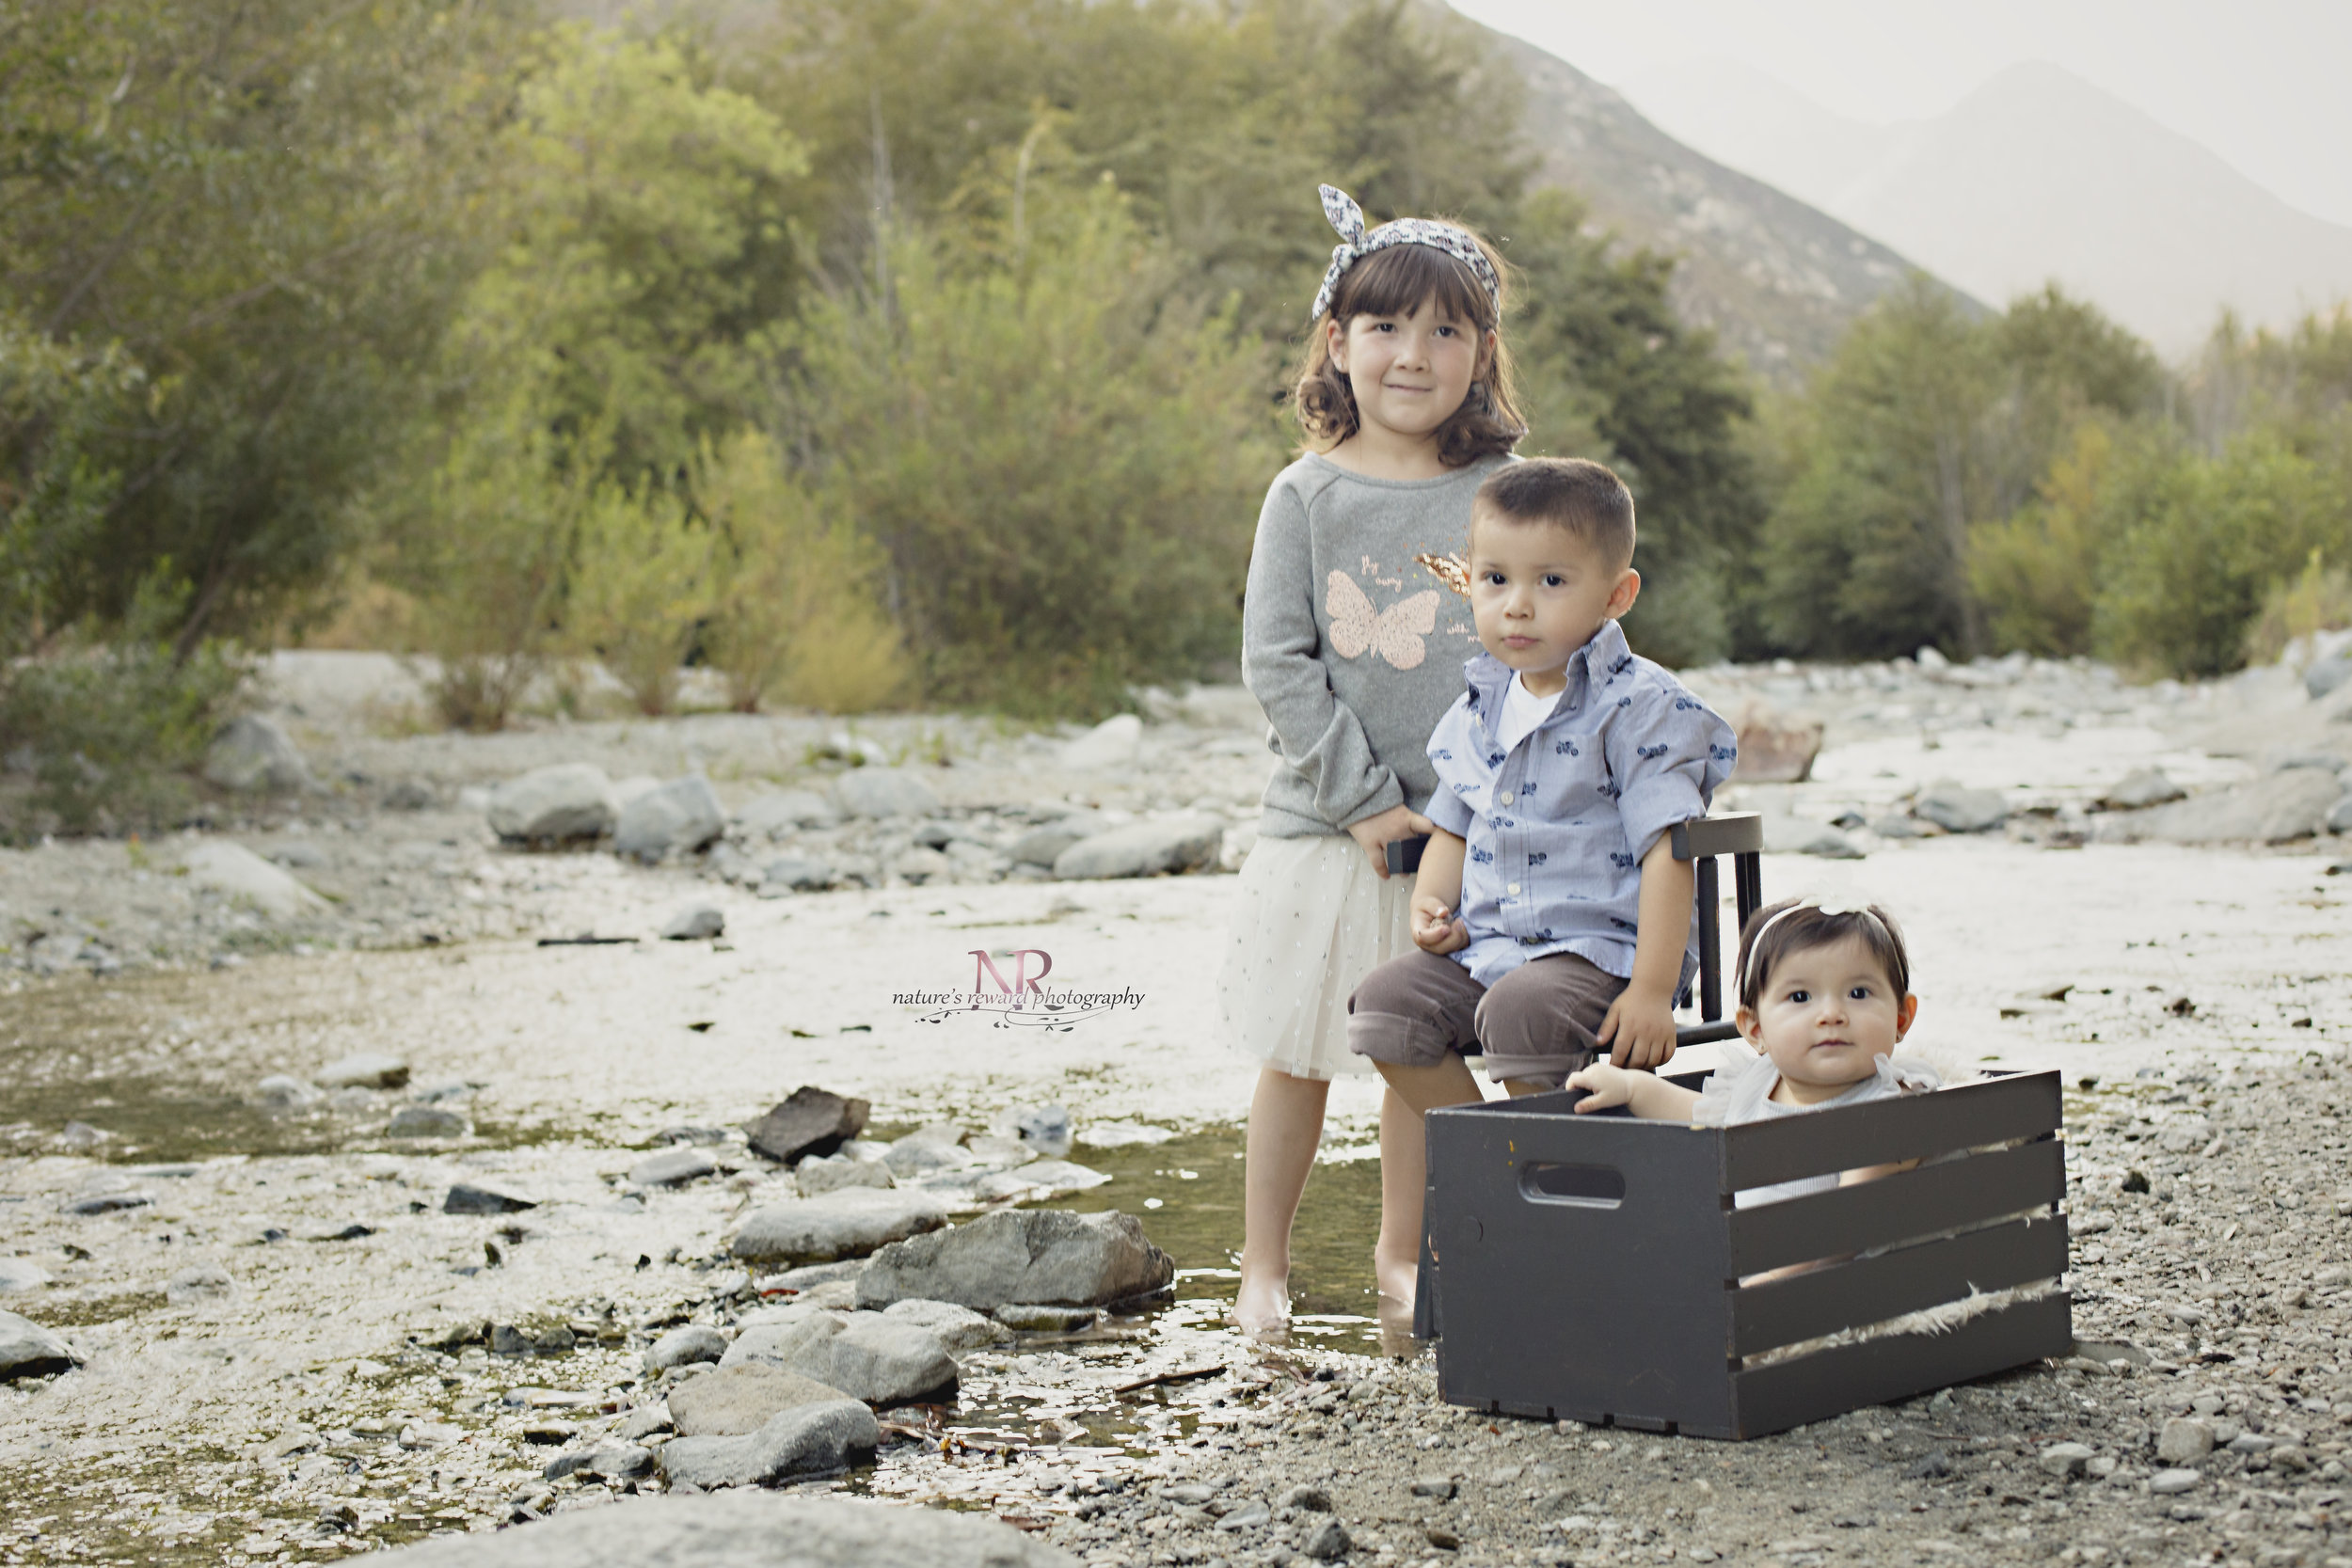 A sibling shot in the stream.